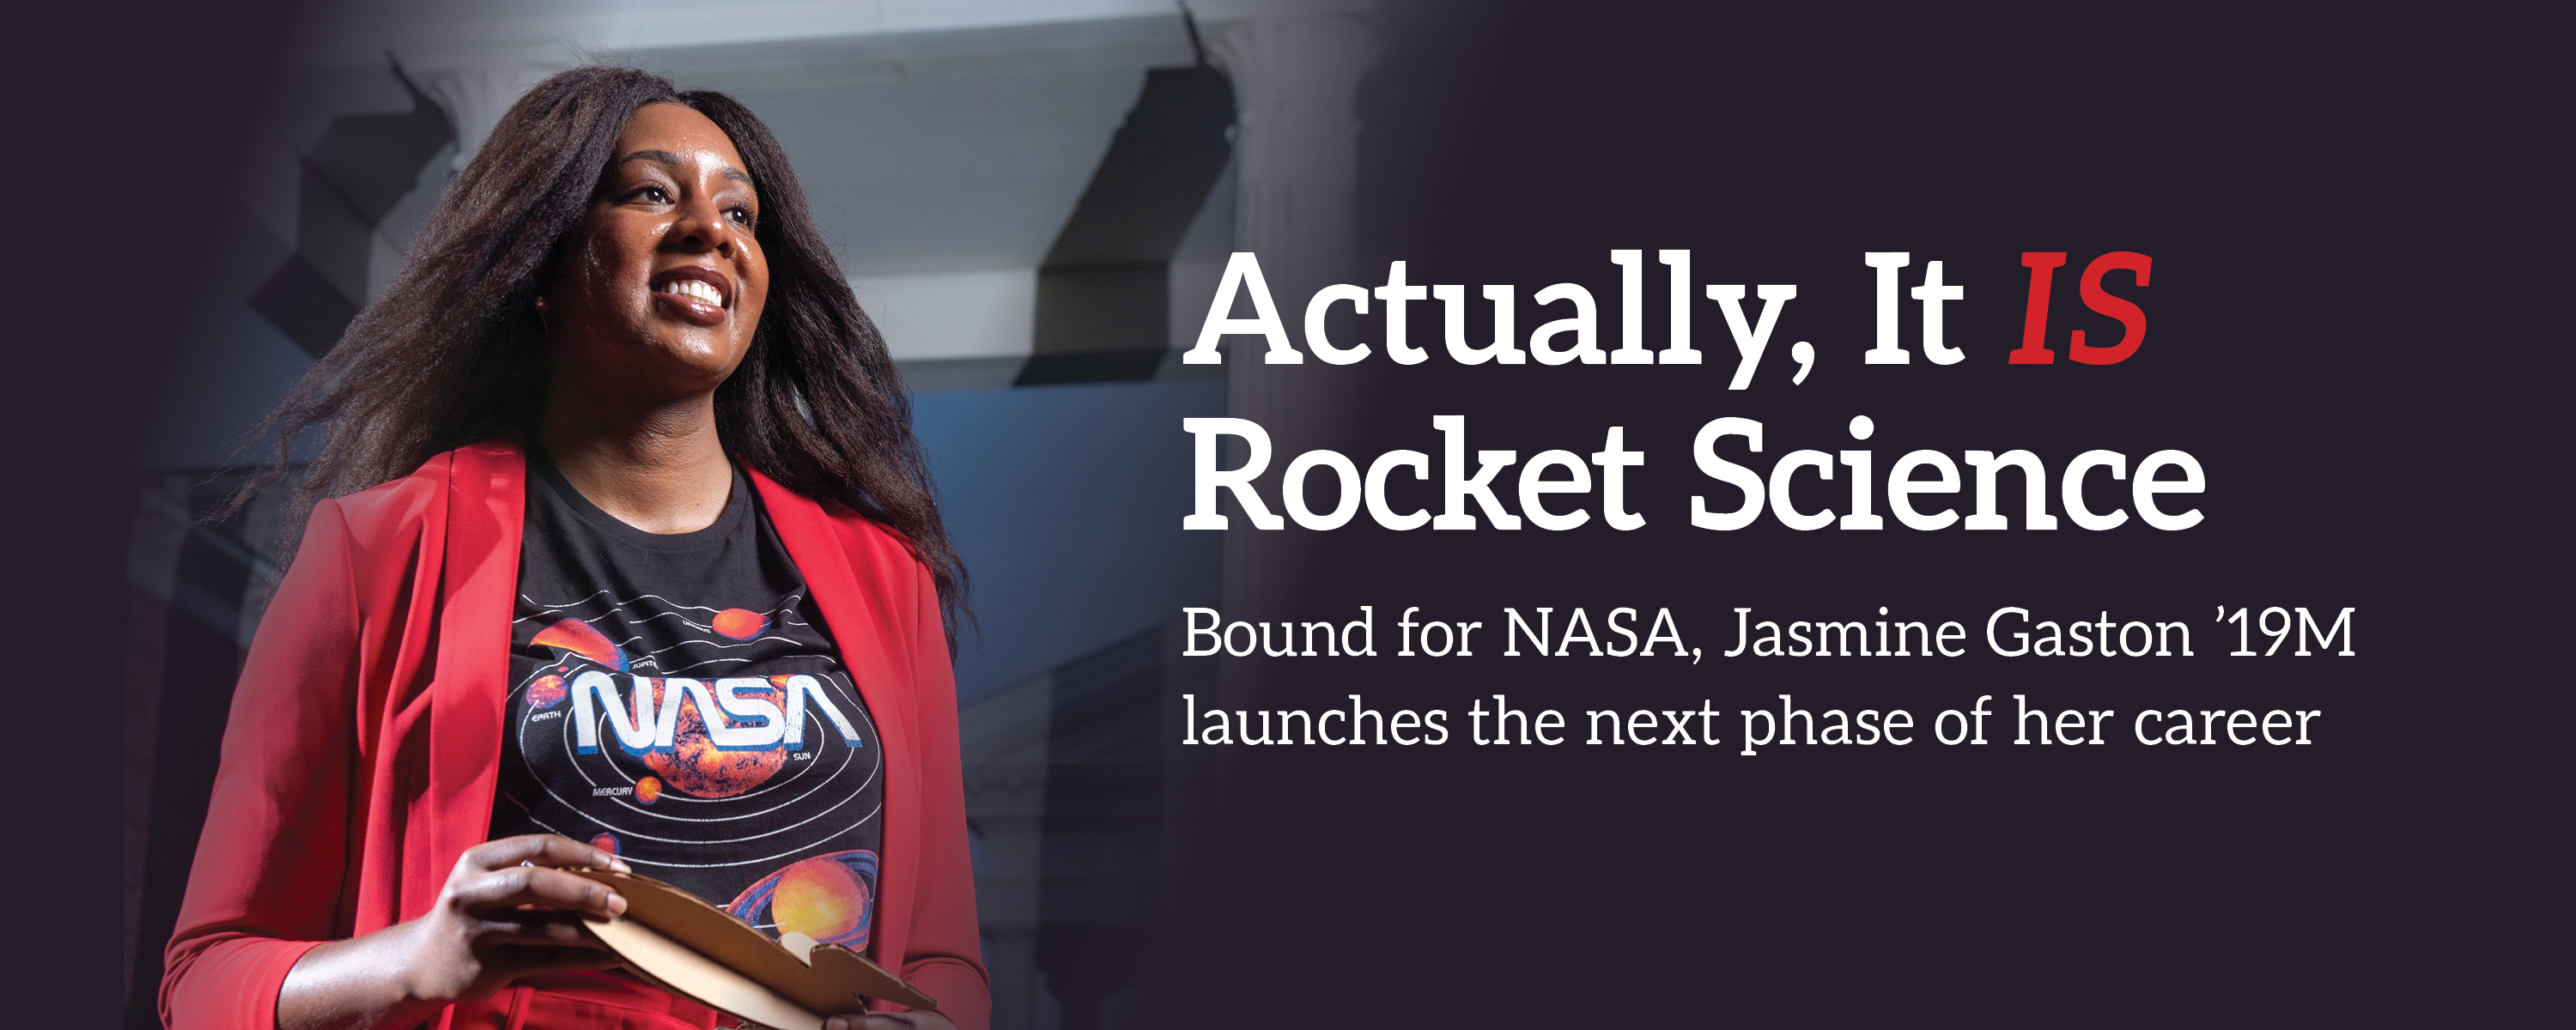 Jasmine Gaston in a NASA tshirt and a red suit holding a cardboard rocket